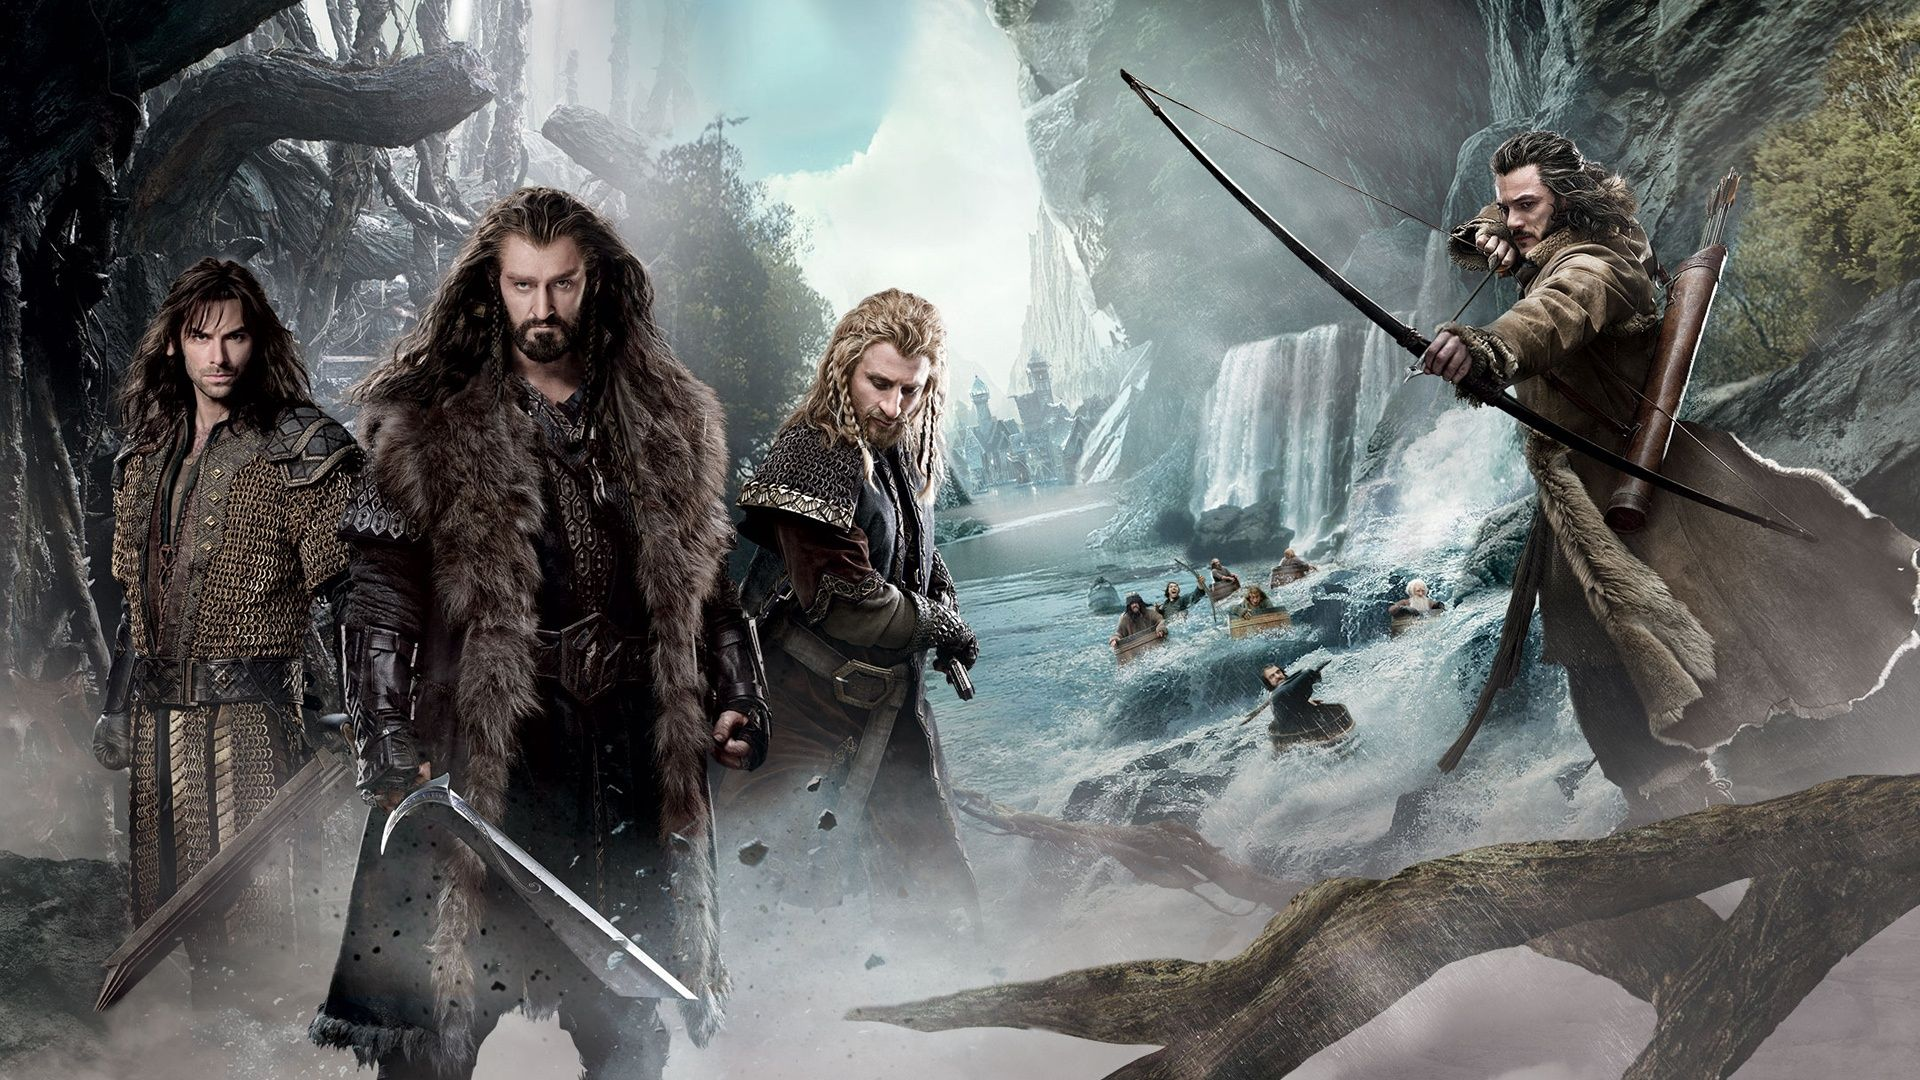 Download torrent the hobbit there and back again 2014 http